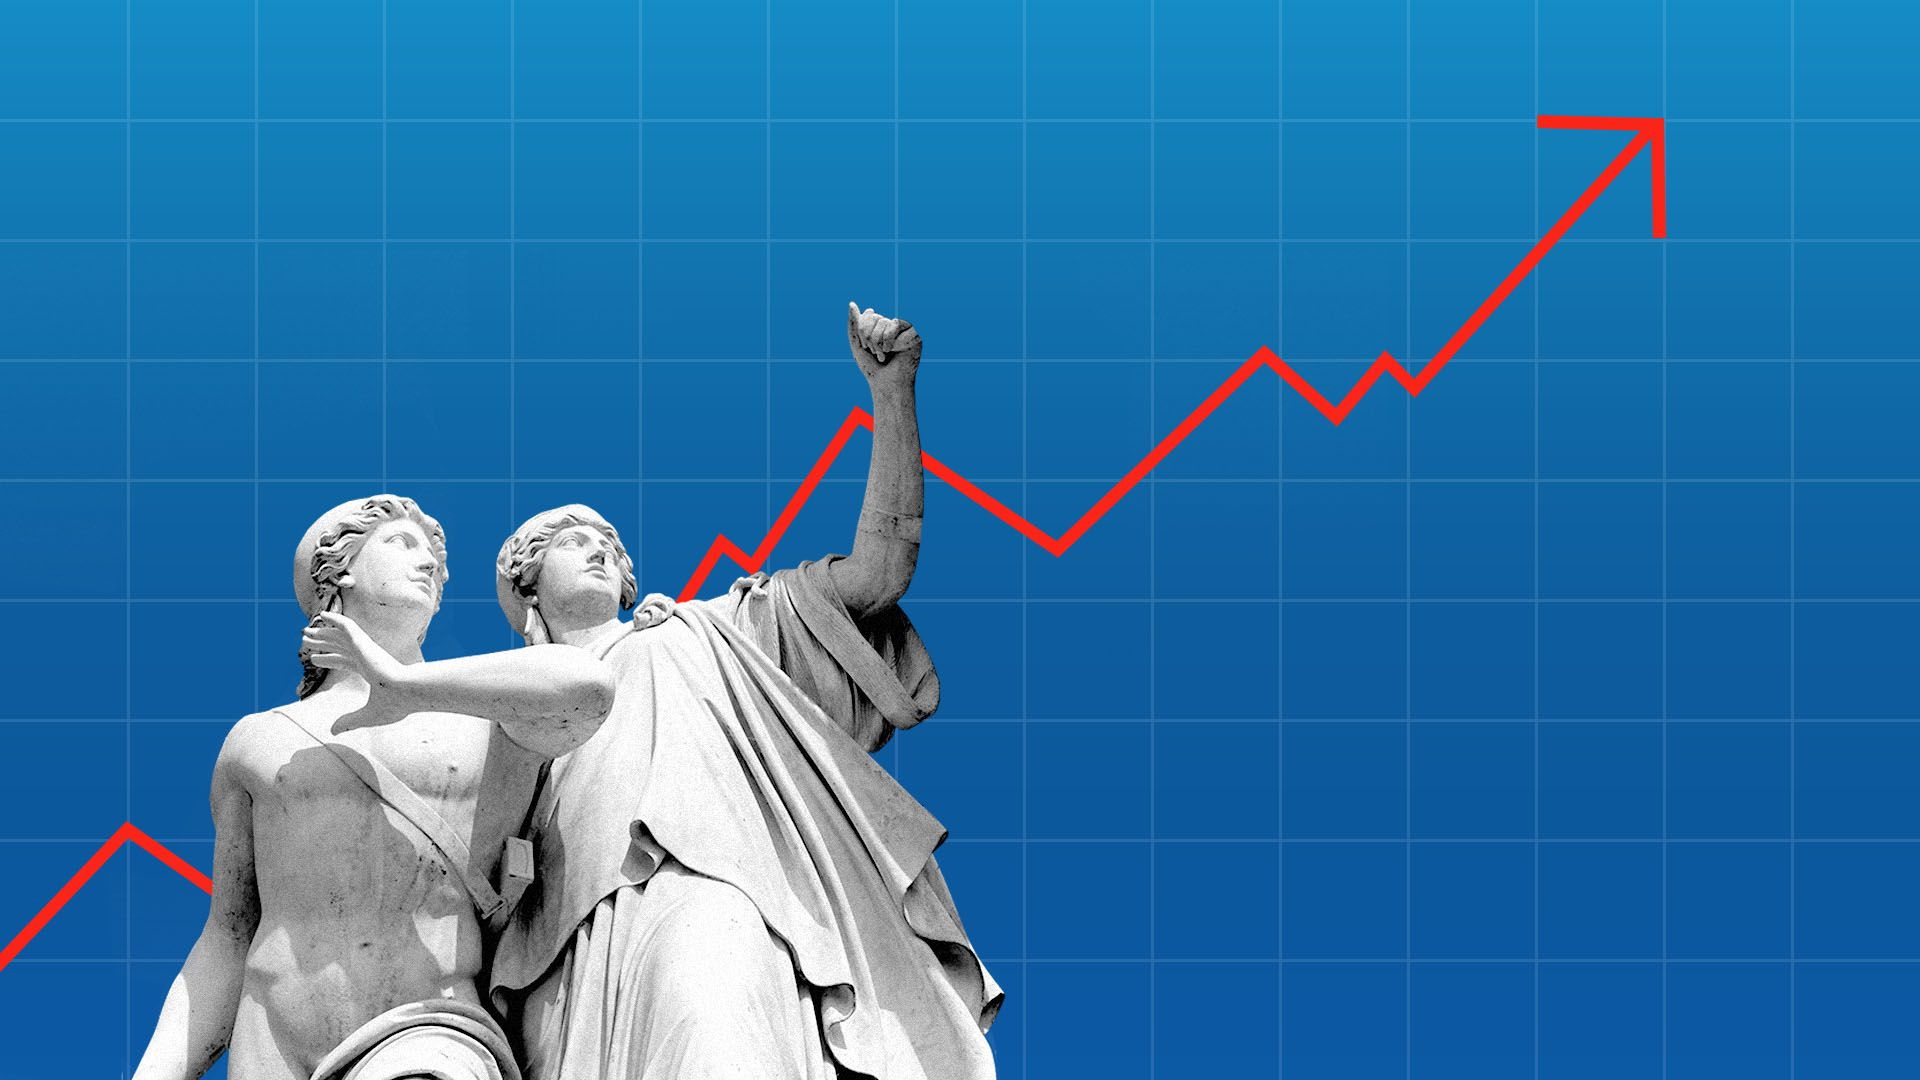 Illustration of an upward trending stock chart with Greek statues cheering.